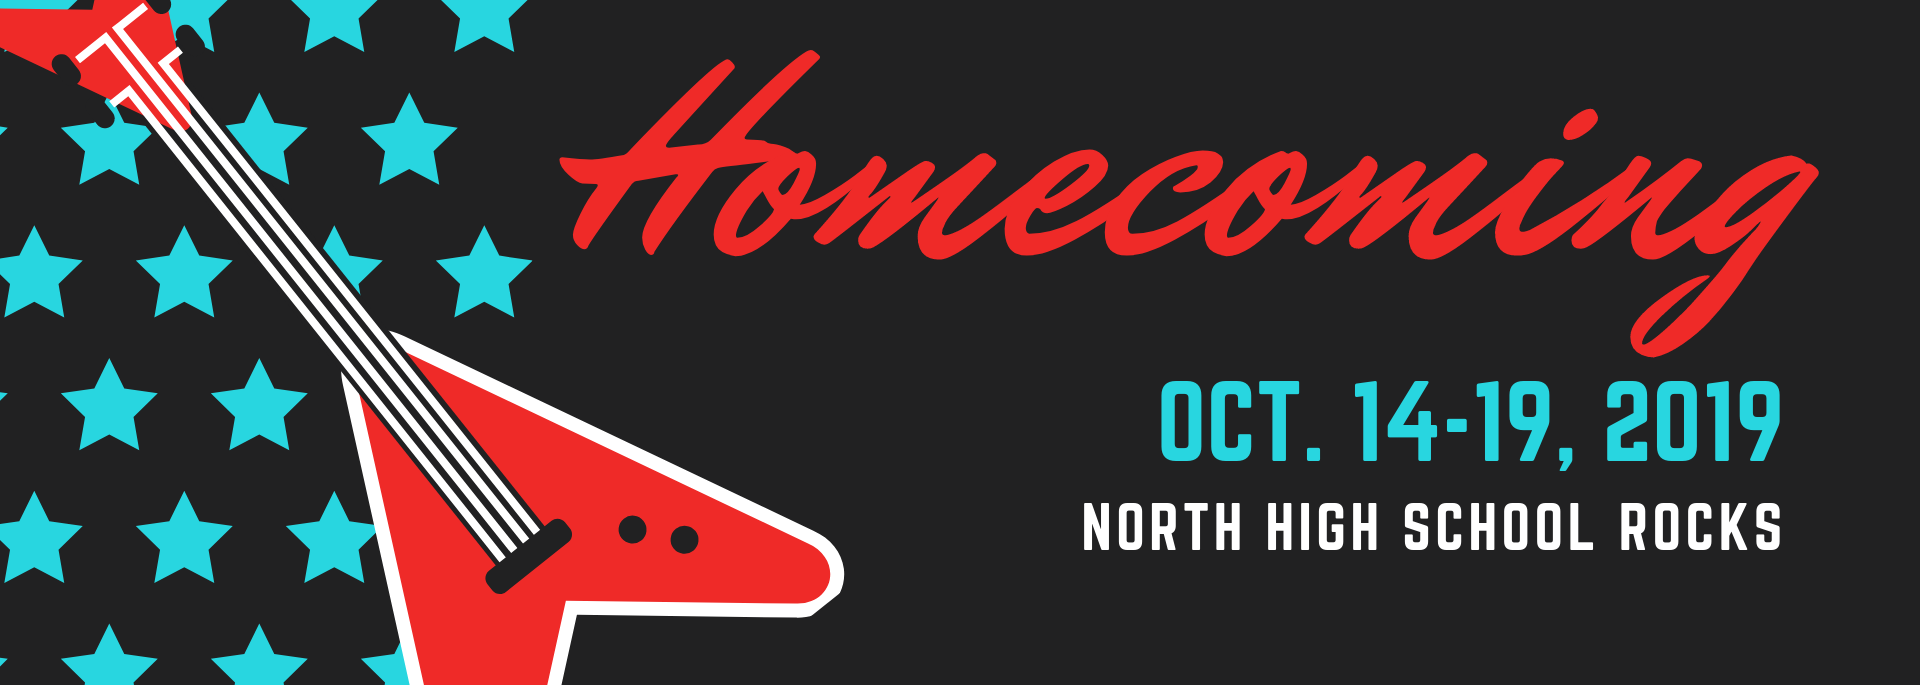 "Black background with blue stars and a red guitar.  The word ""Homecoming"" in red with ""Oct. 14-19, 2019"" in blue and ""NORTH HIGH SCHOOL ROCKS"" in white lettering"